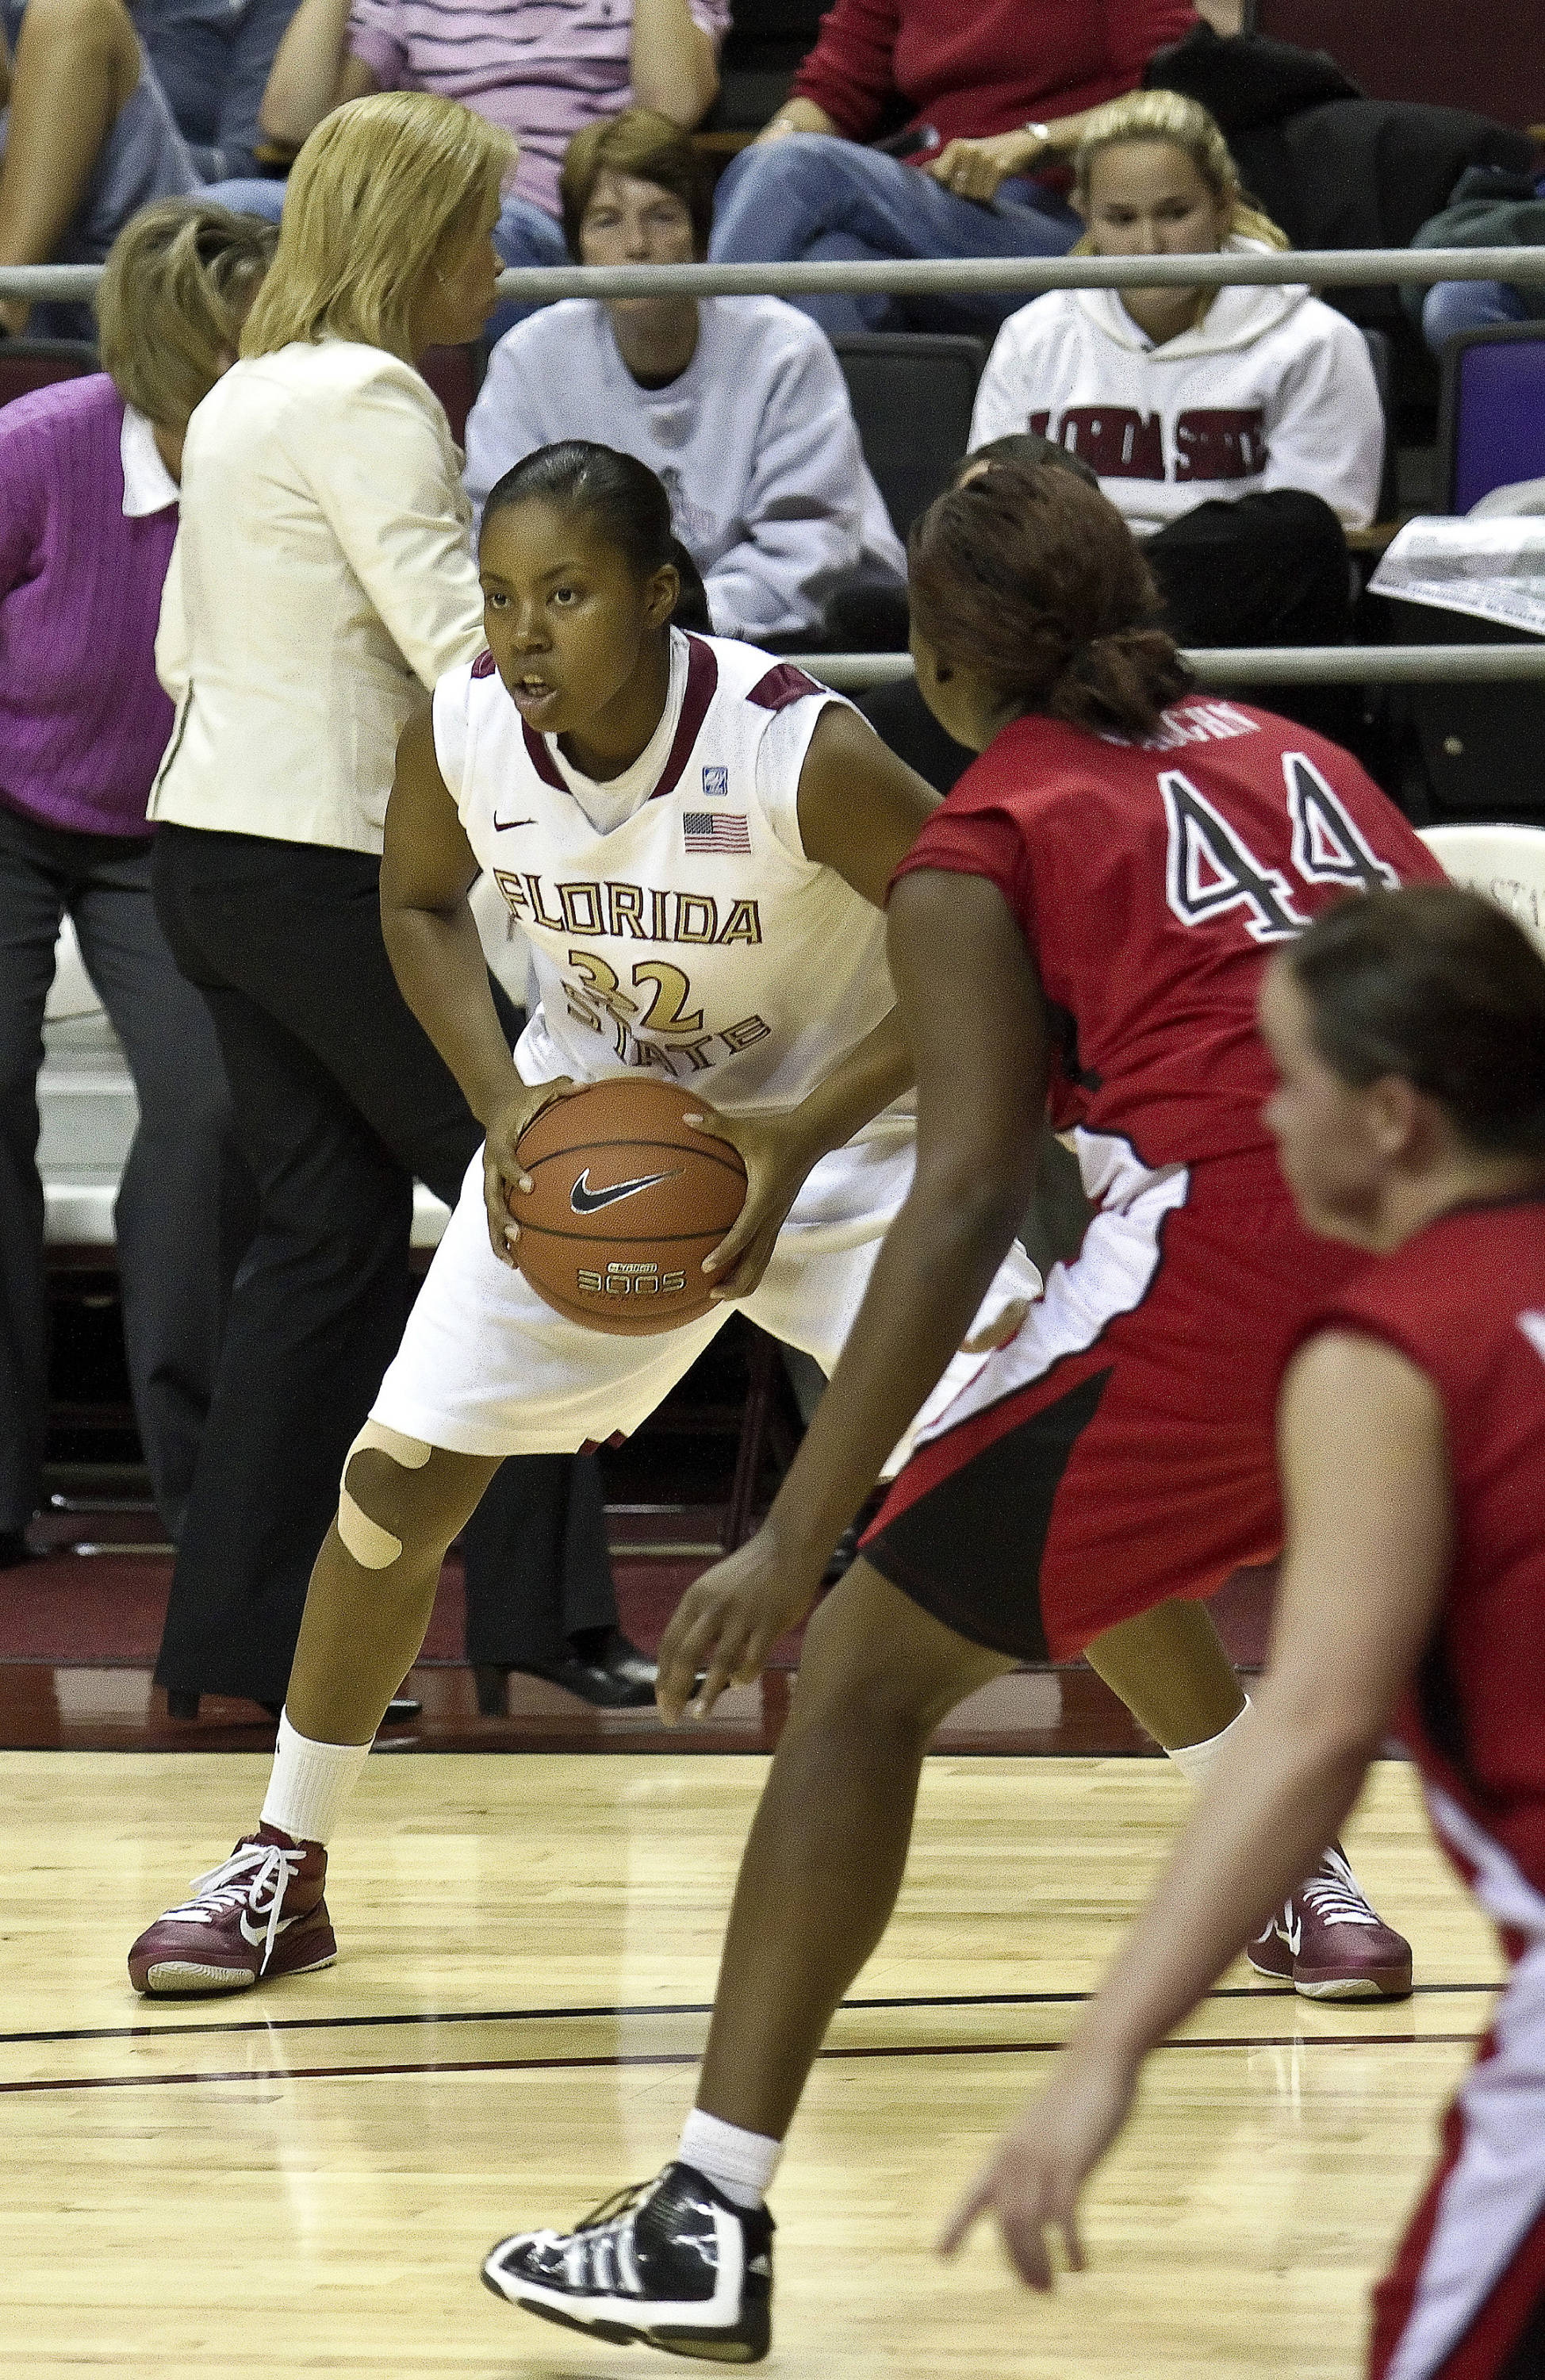 FSU vs Jacksonville State - 12/12/10 - Lauren Coleman (32)#$%^Photo by Steve Musco